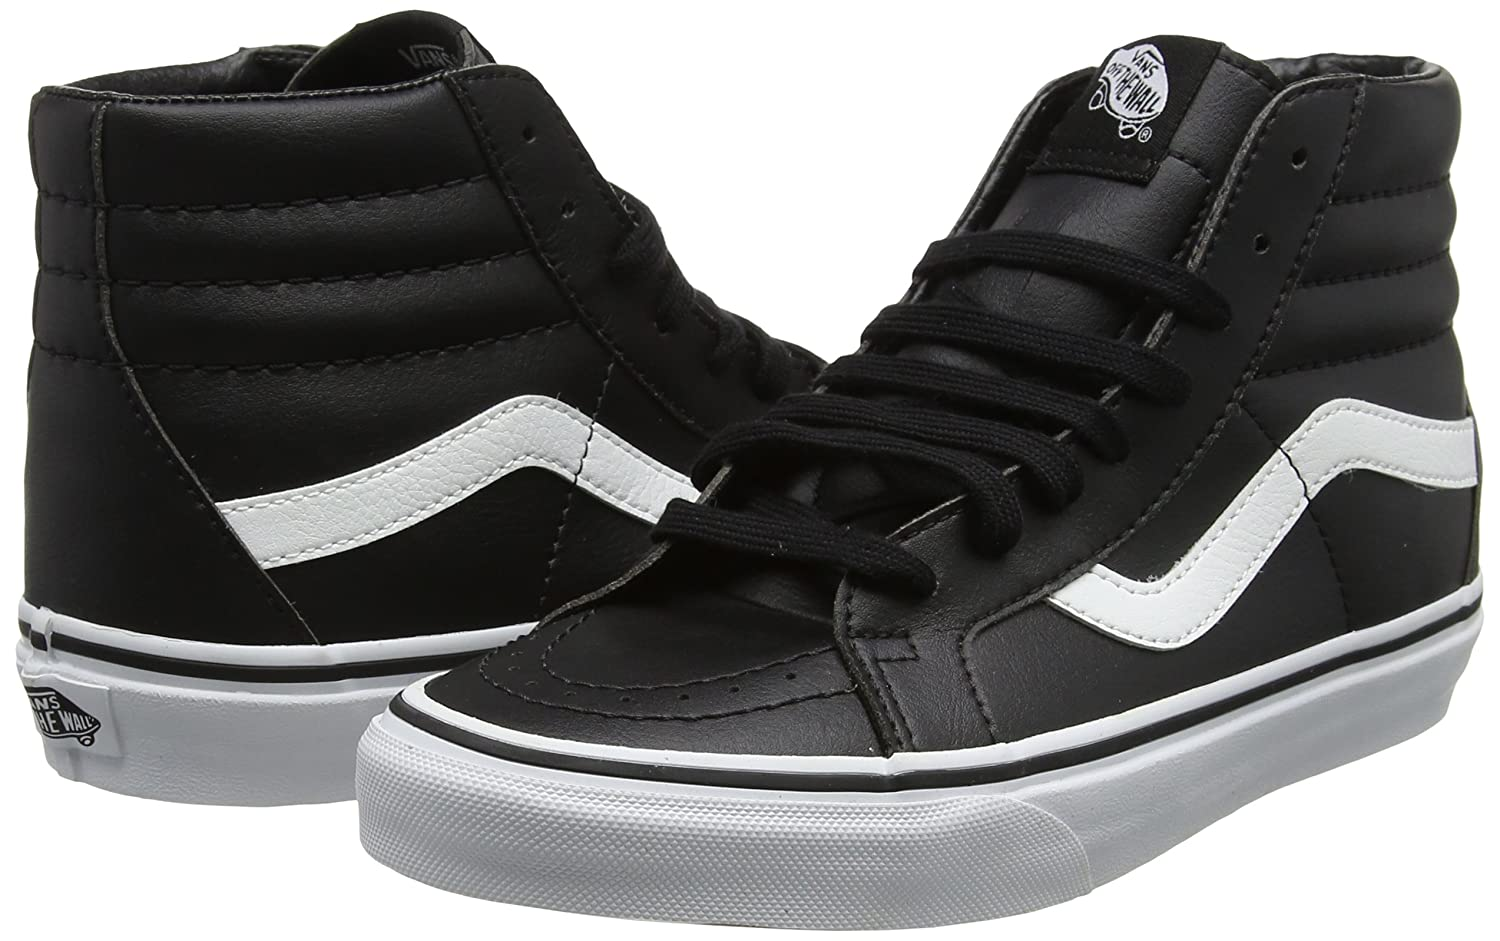 188300695f18c6 ... VANS MENS SK8 HI REISSUE REISSUE REISSUE LEATHER SHOES B01MXW5XOI 7.5 D( M) US